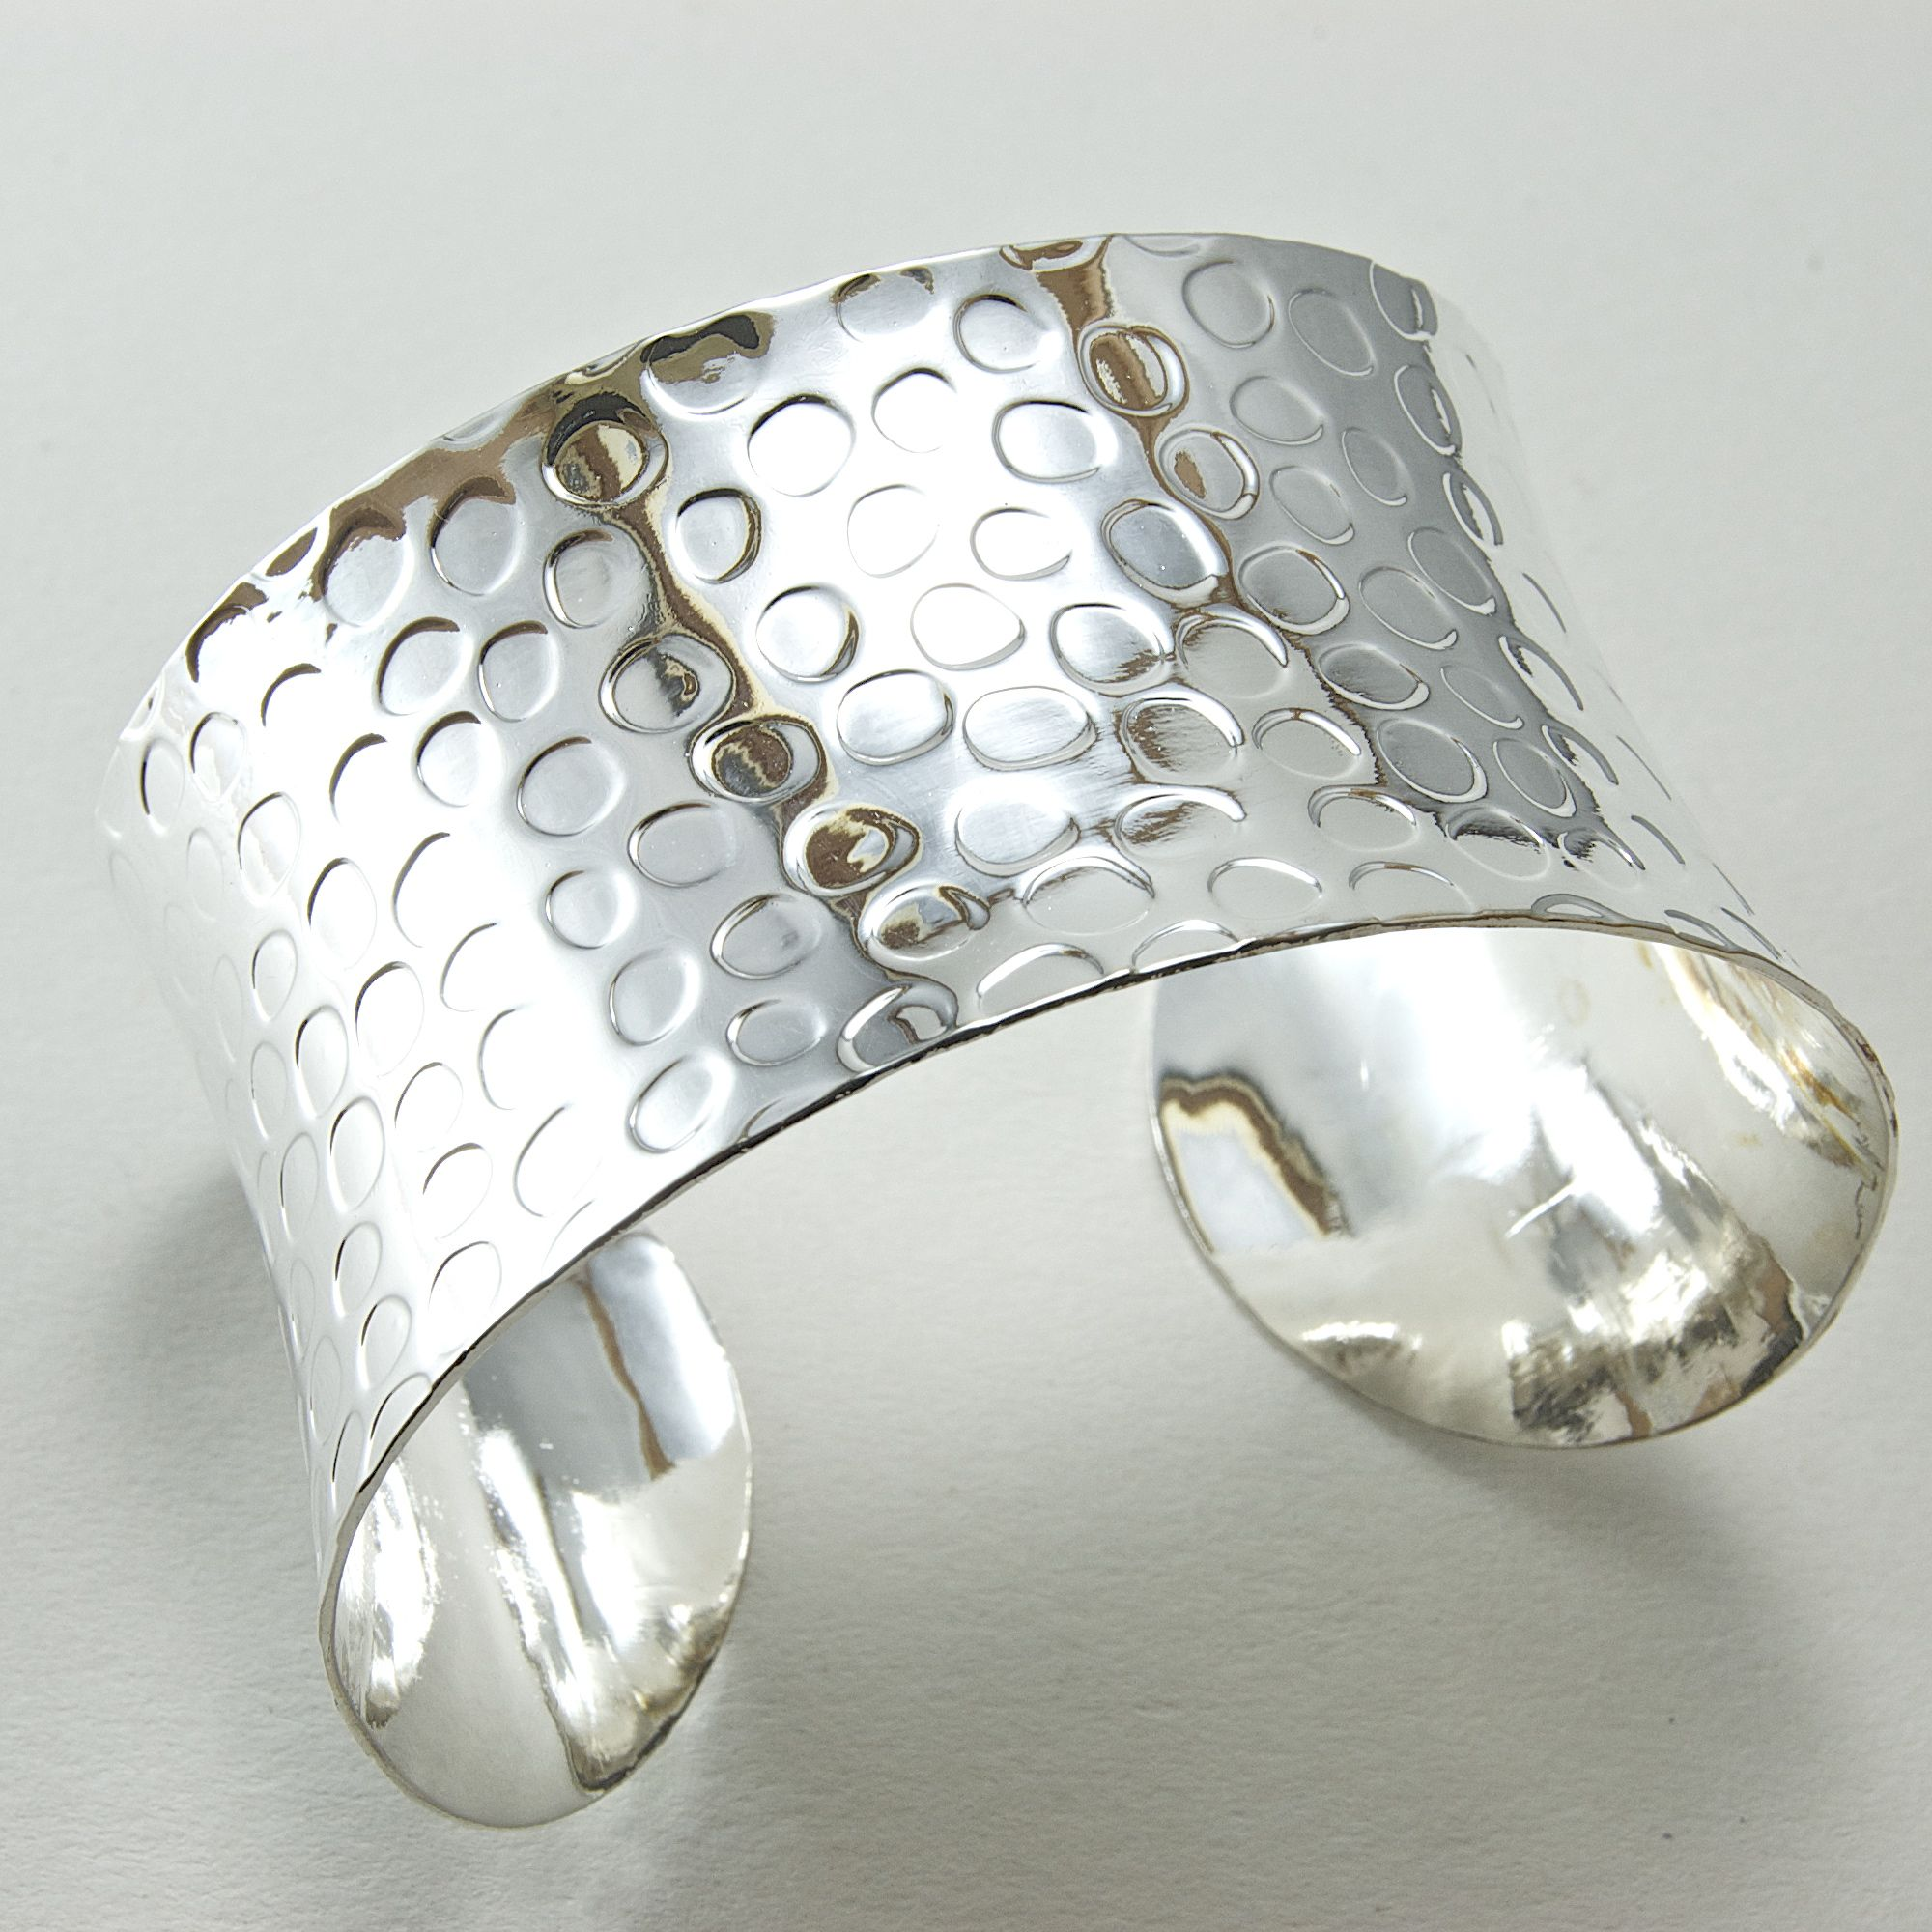 46mm Wide Polished Stamped Silver Cuff, 1 each